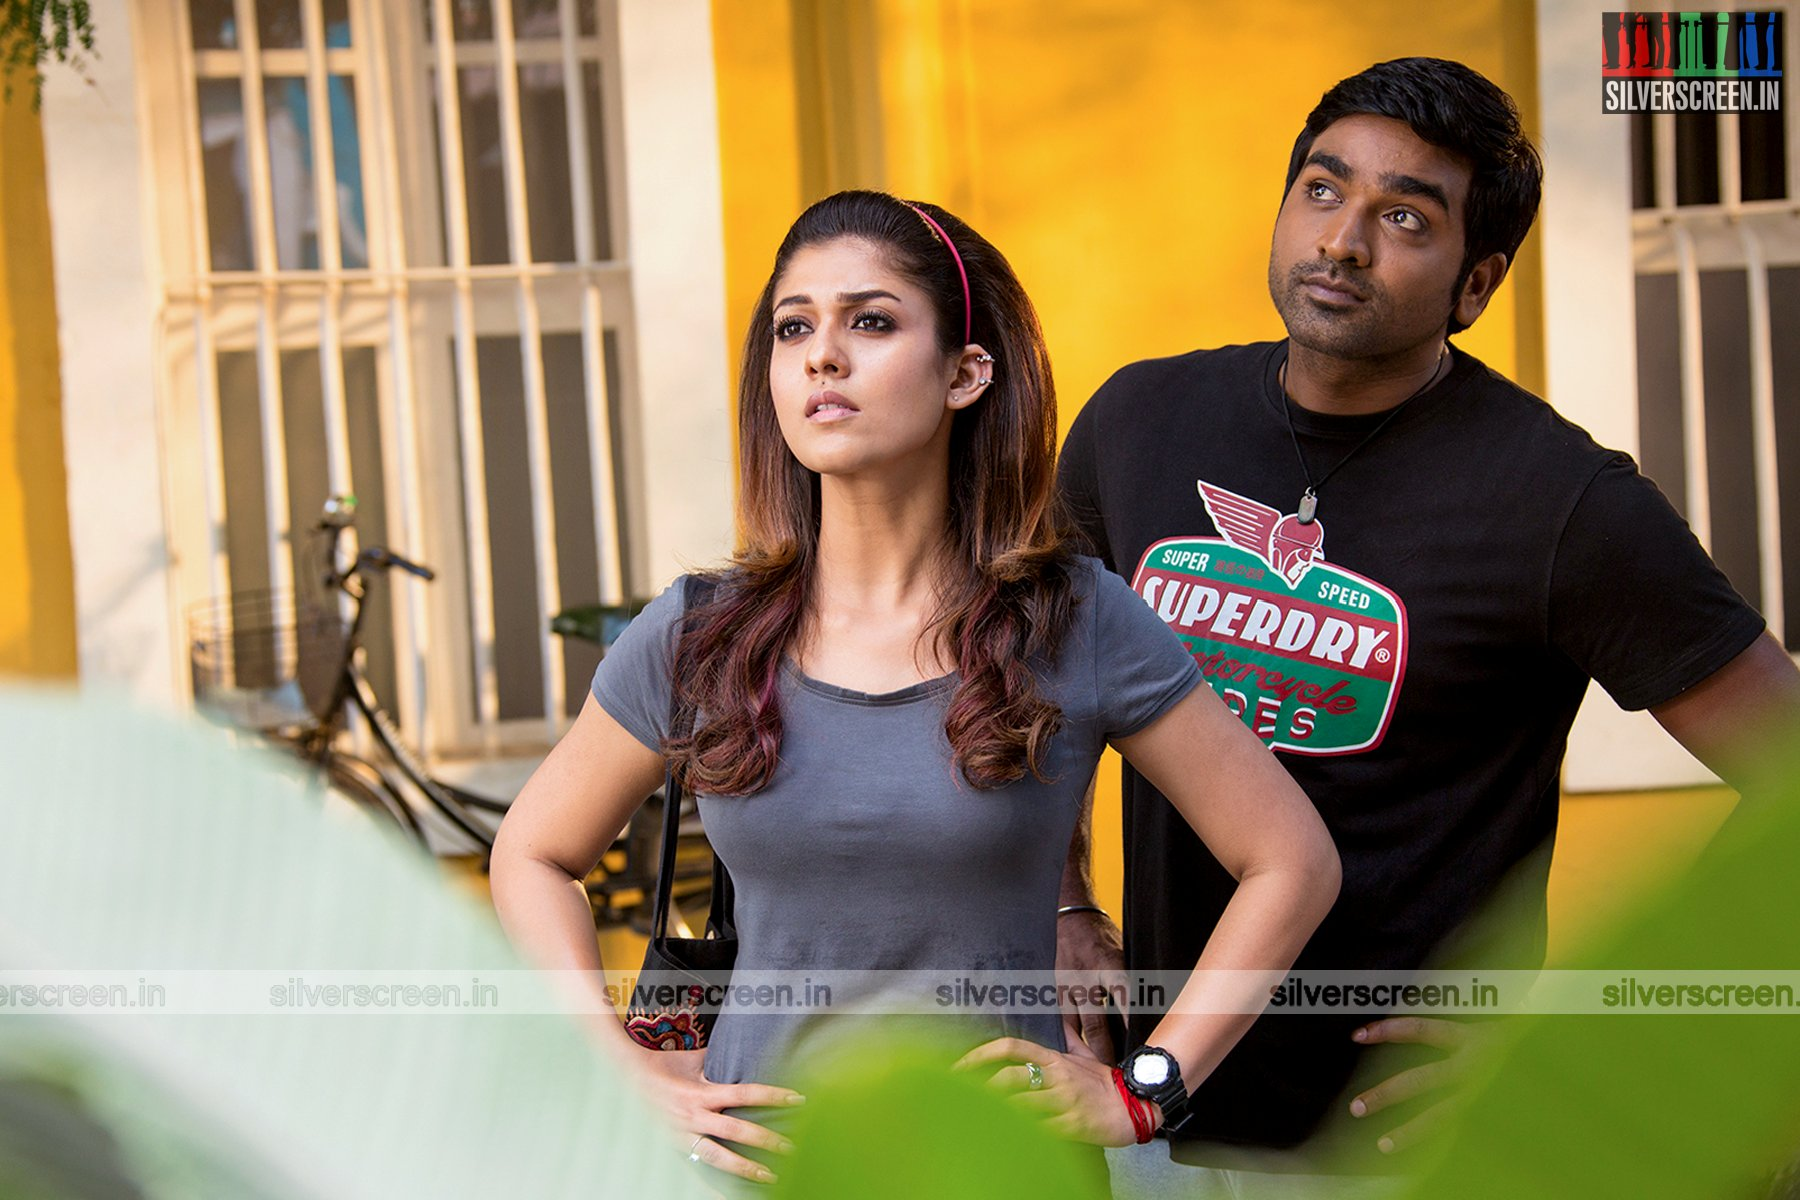 Malayalam Love Quotes Hd Wallpapers Naanum Rowdy Dhaan Movie Stills Silverscreen In